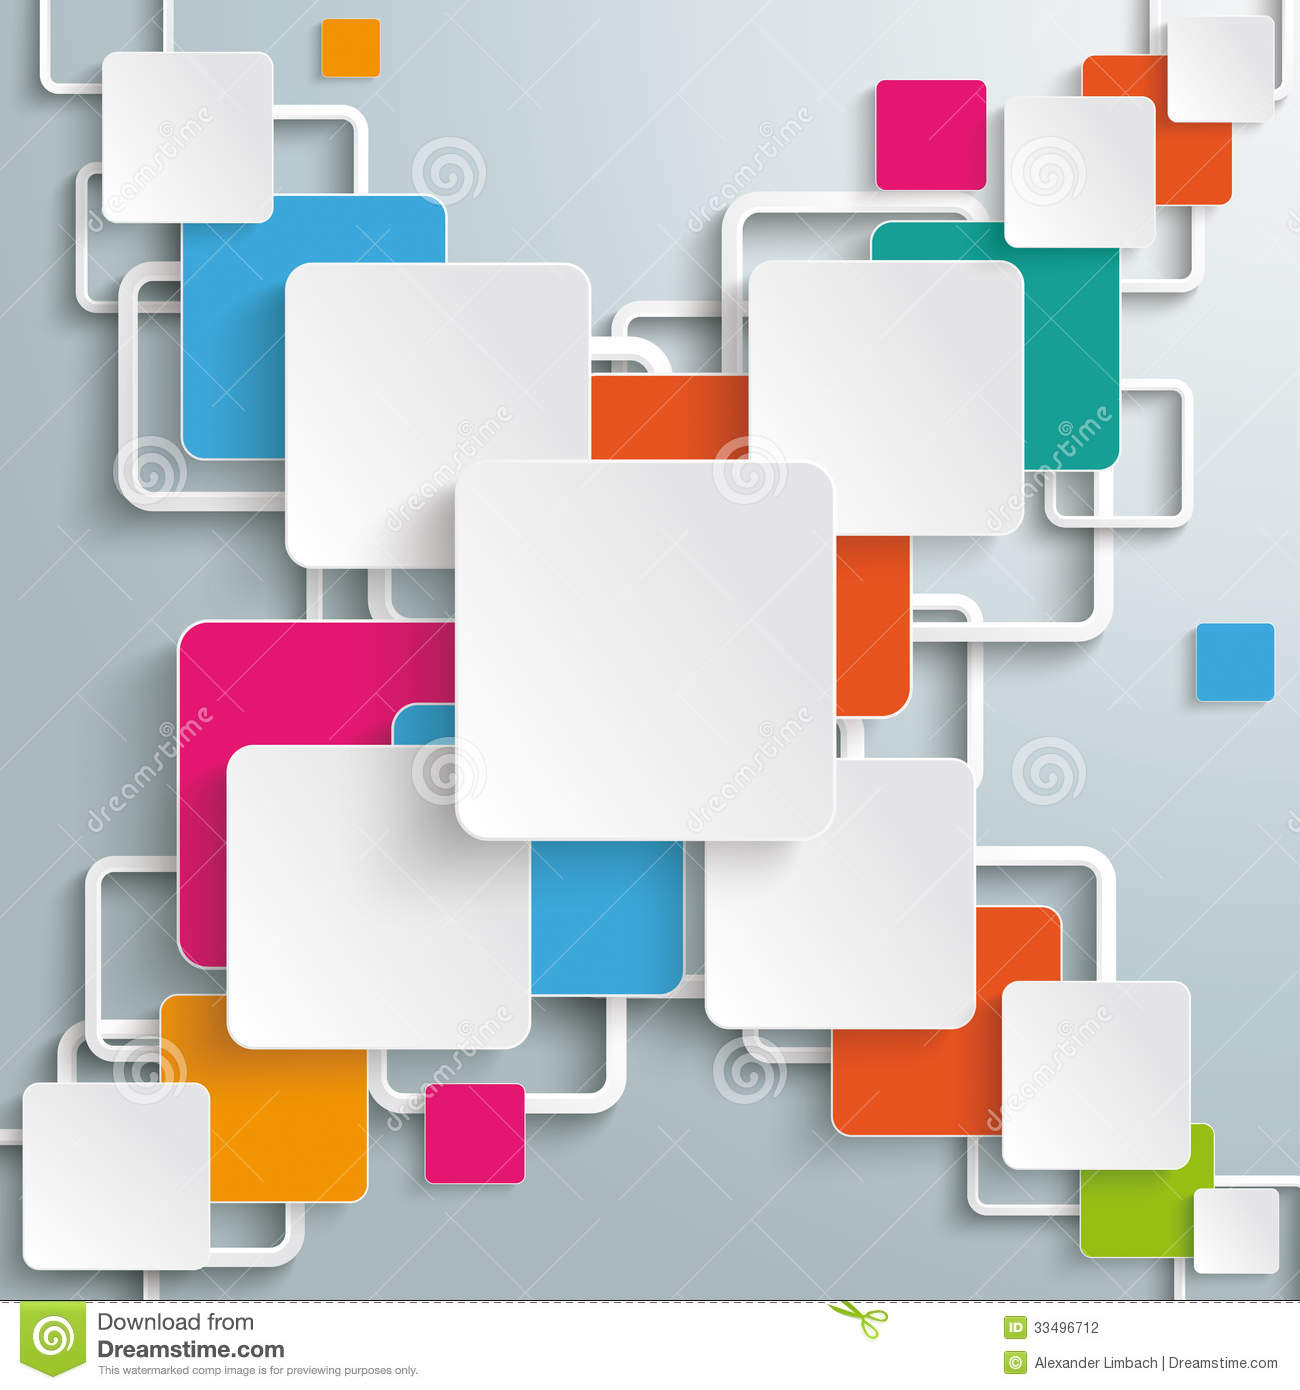 Infographic design on the grey background eps 10 vector file - Colorful Rectangles Squares Cross Design Stock Photography